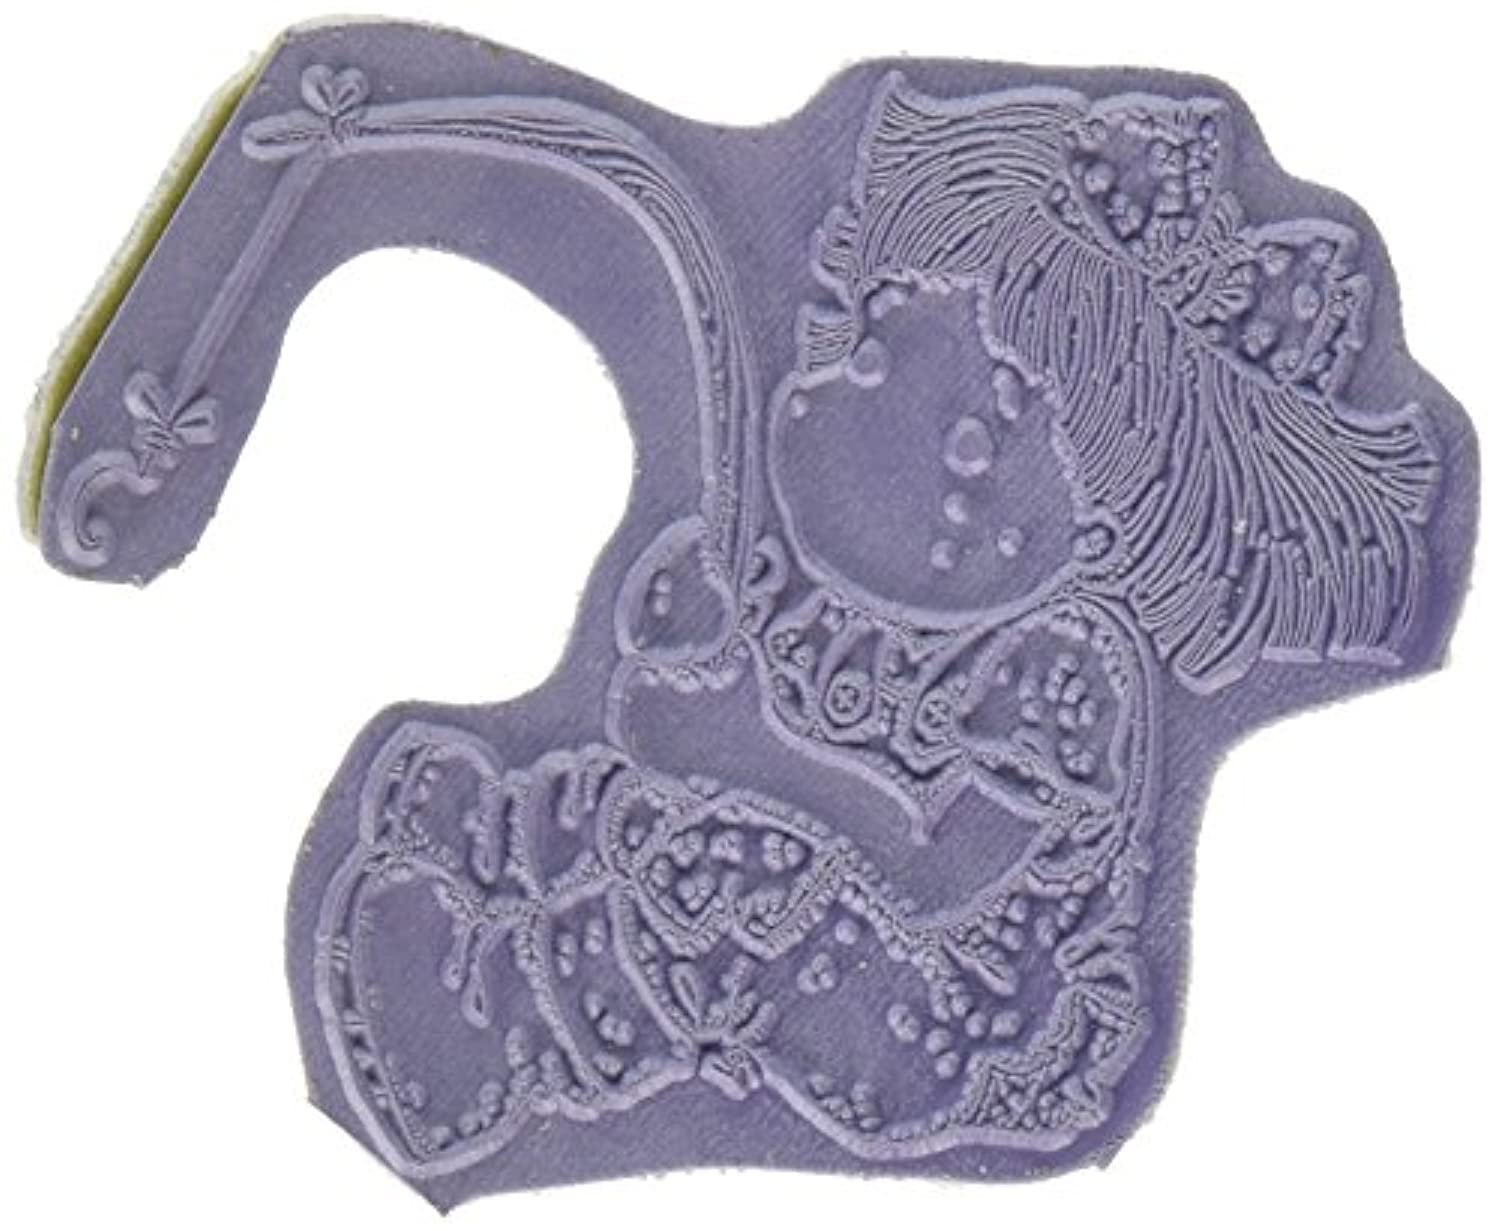 Magnolia Summer Memories Cling Stamp, 6.5 by 4-Inch, Hooked Tilda